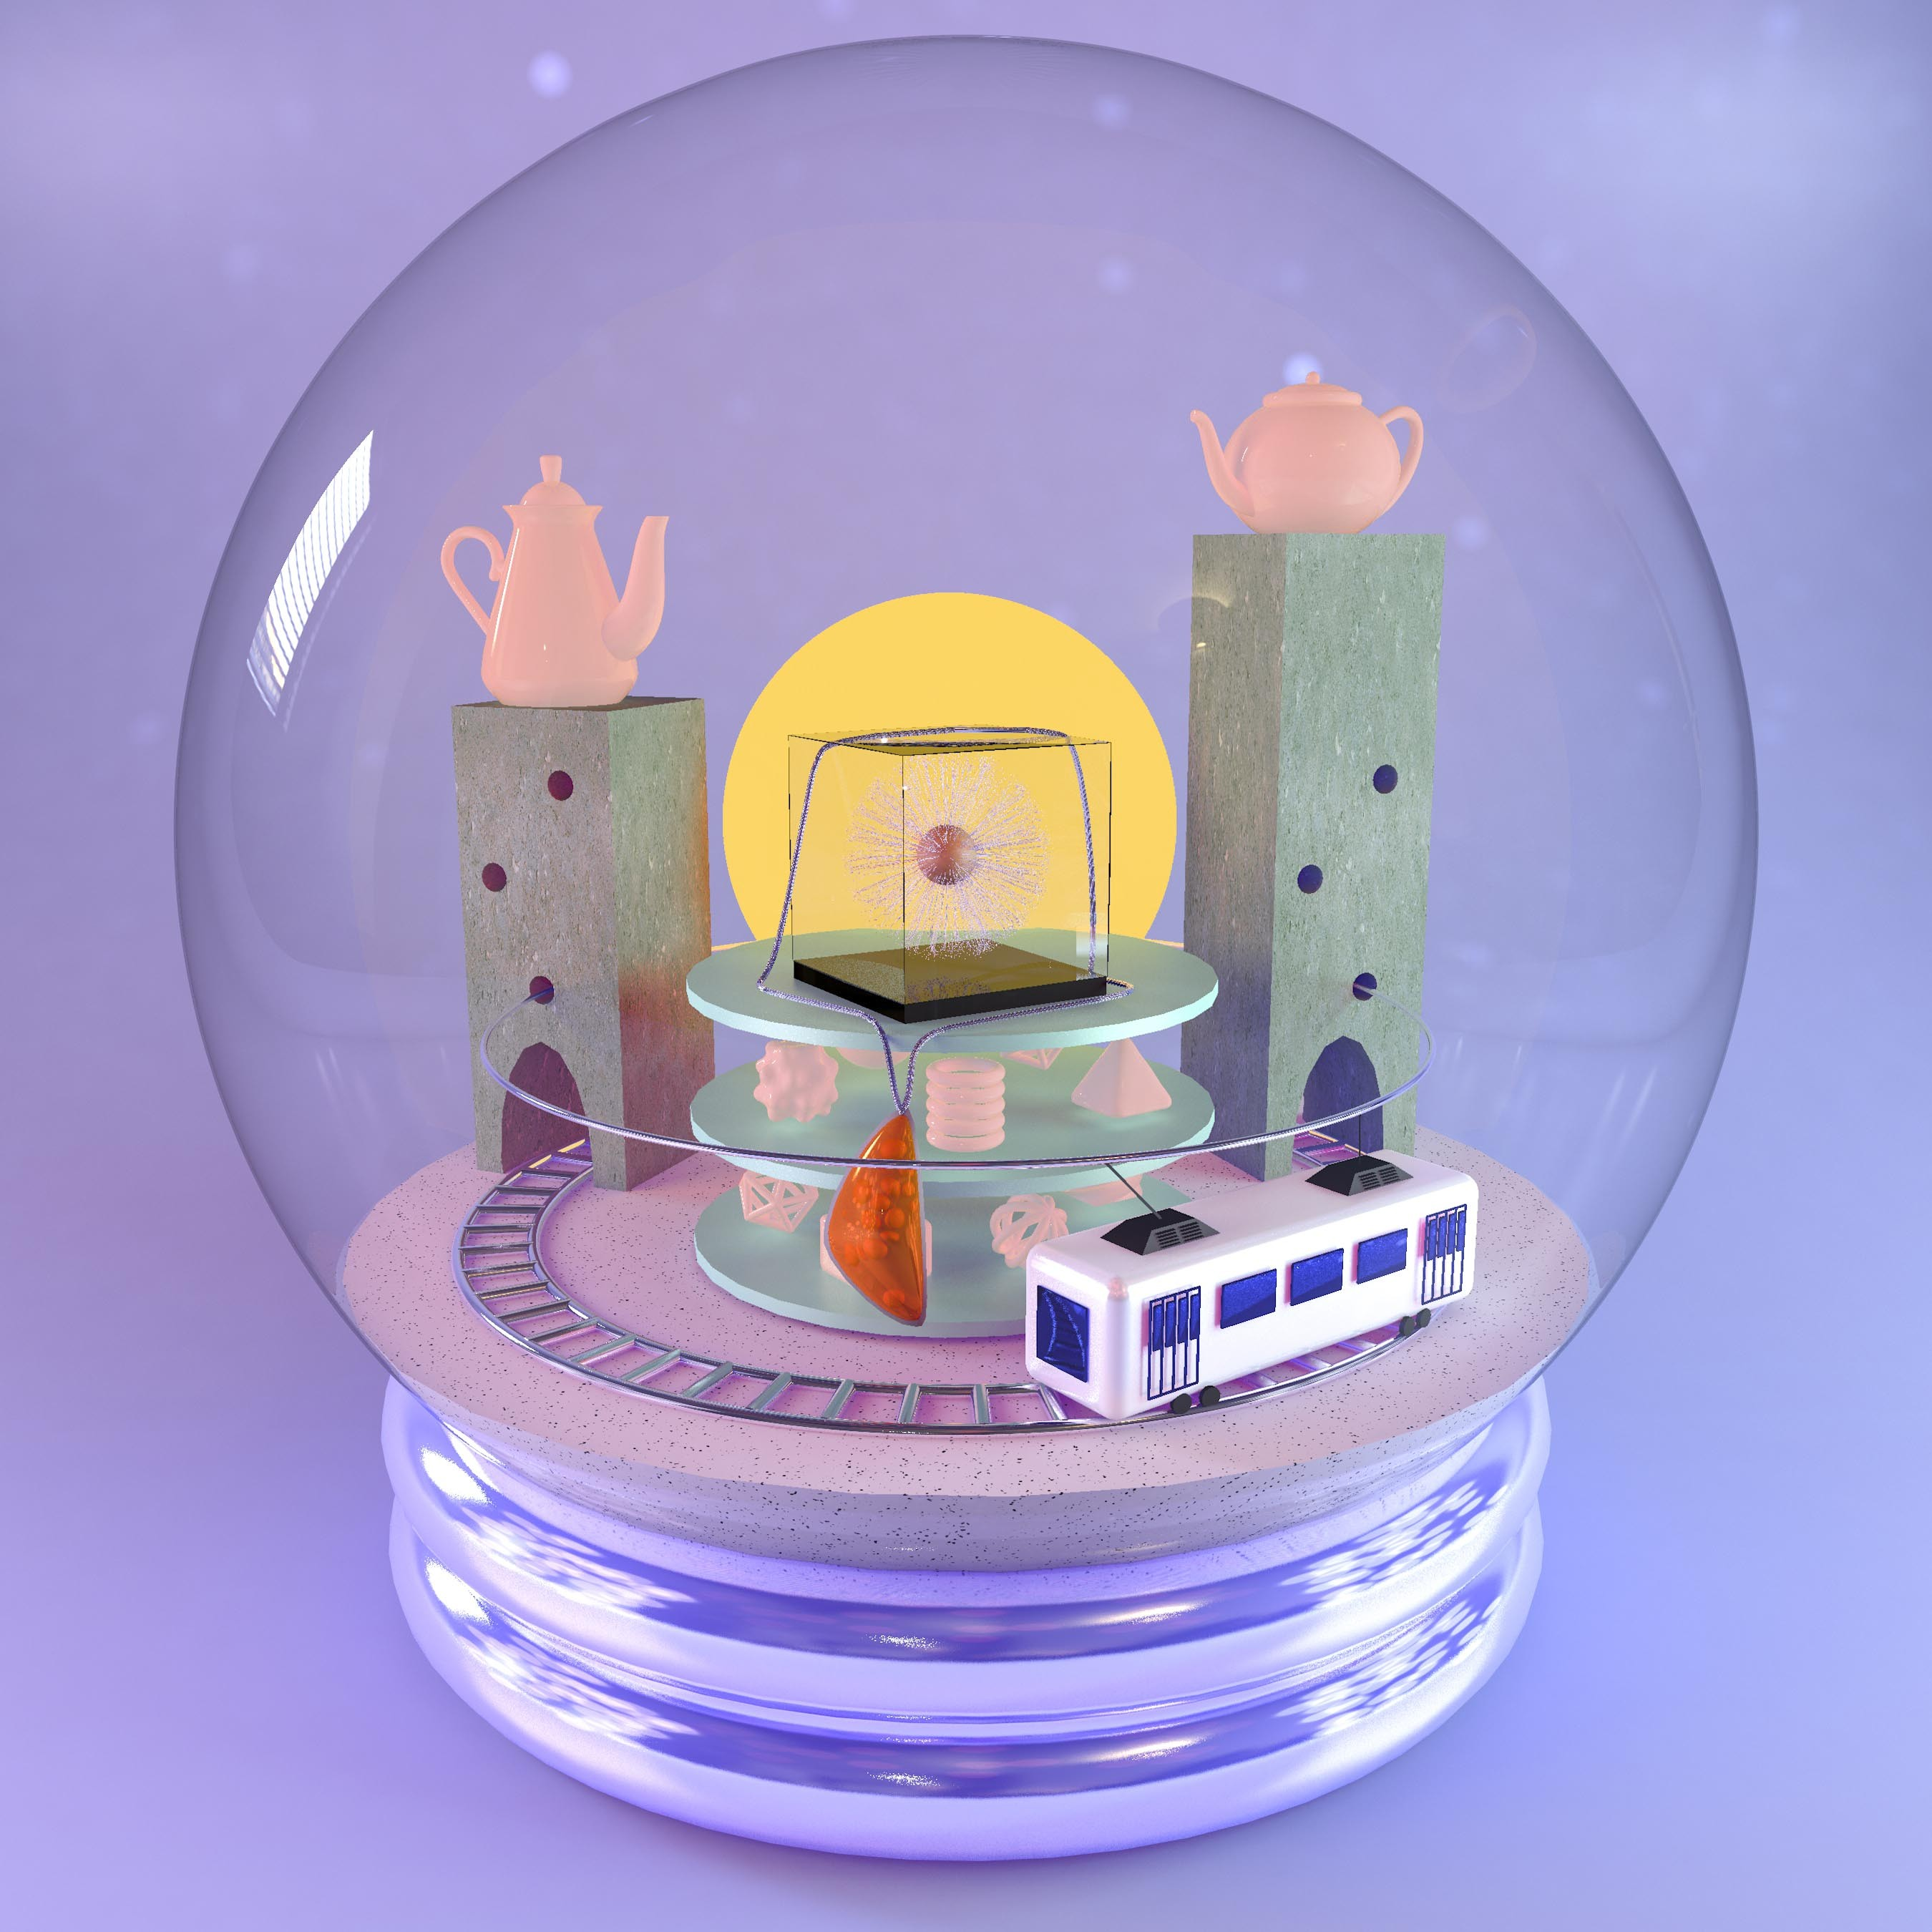 Digital render of a snow globe depicting a necklace and a flower paperweight, among other supporting objects